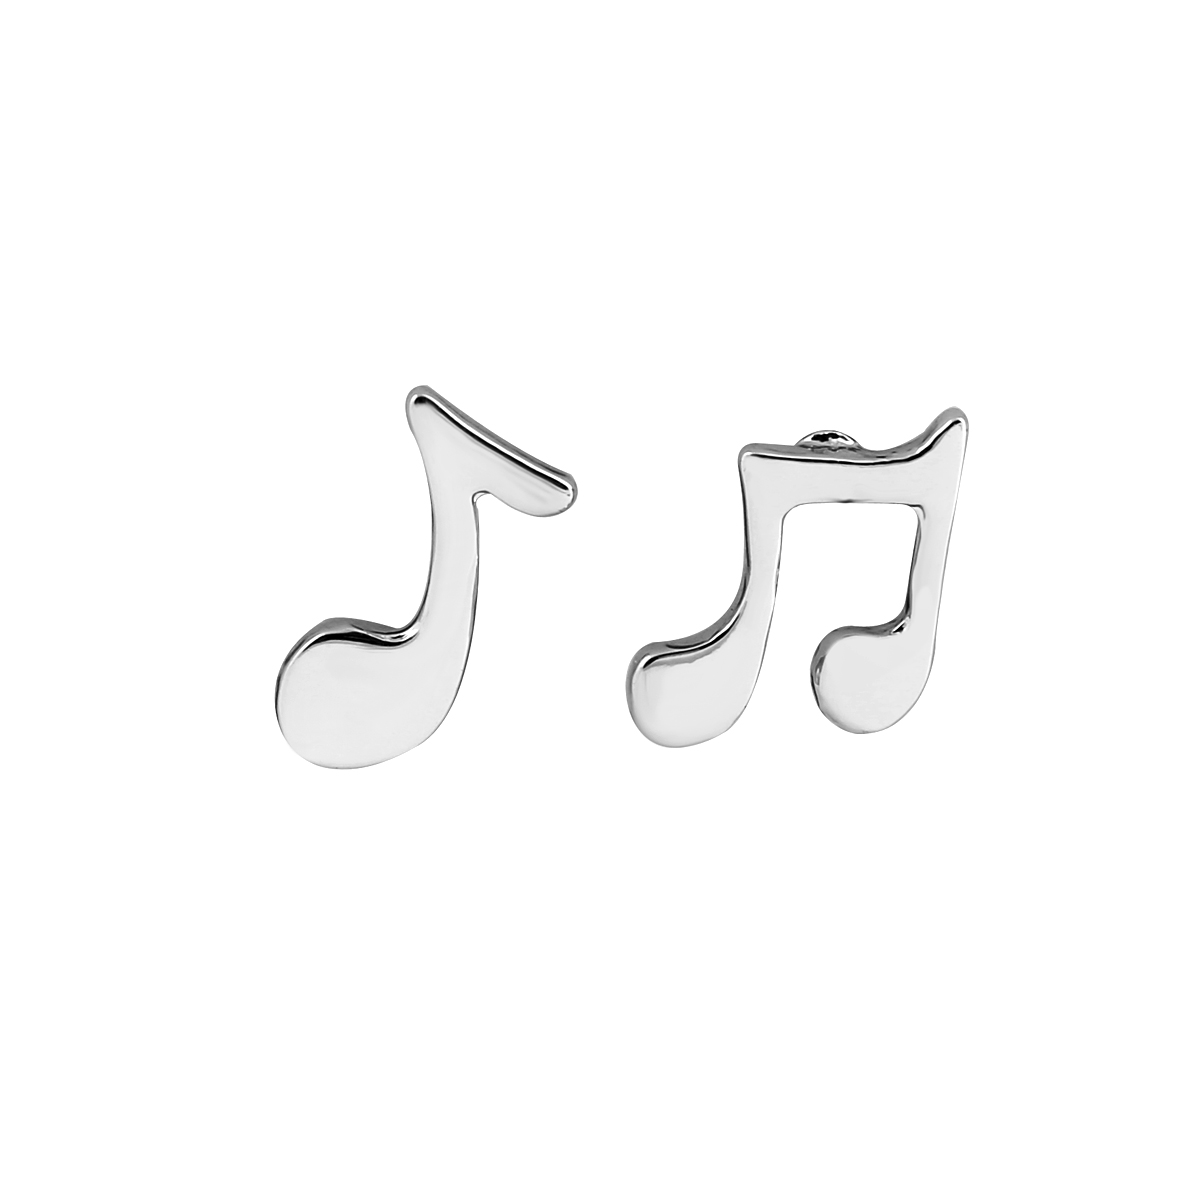 Aliexpress Smjel 2017 Fashion Music Note Stud Earrings For Women Notation Party Gifts S125 From Reliable